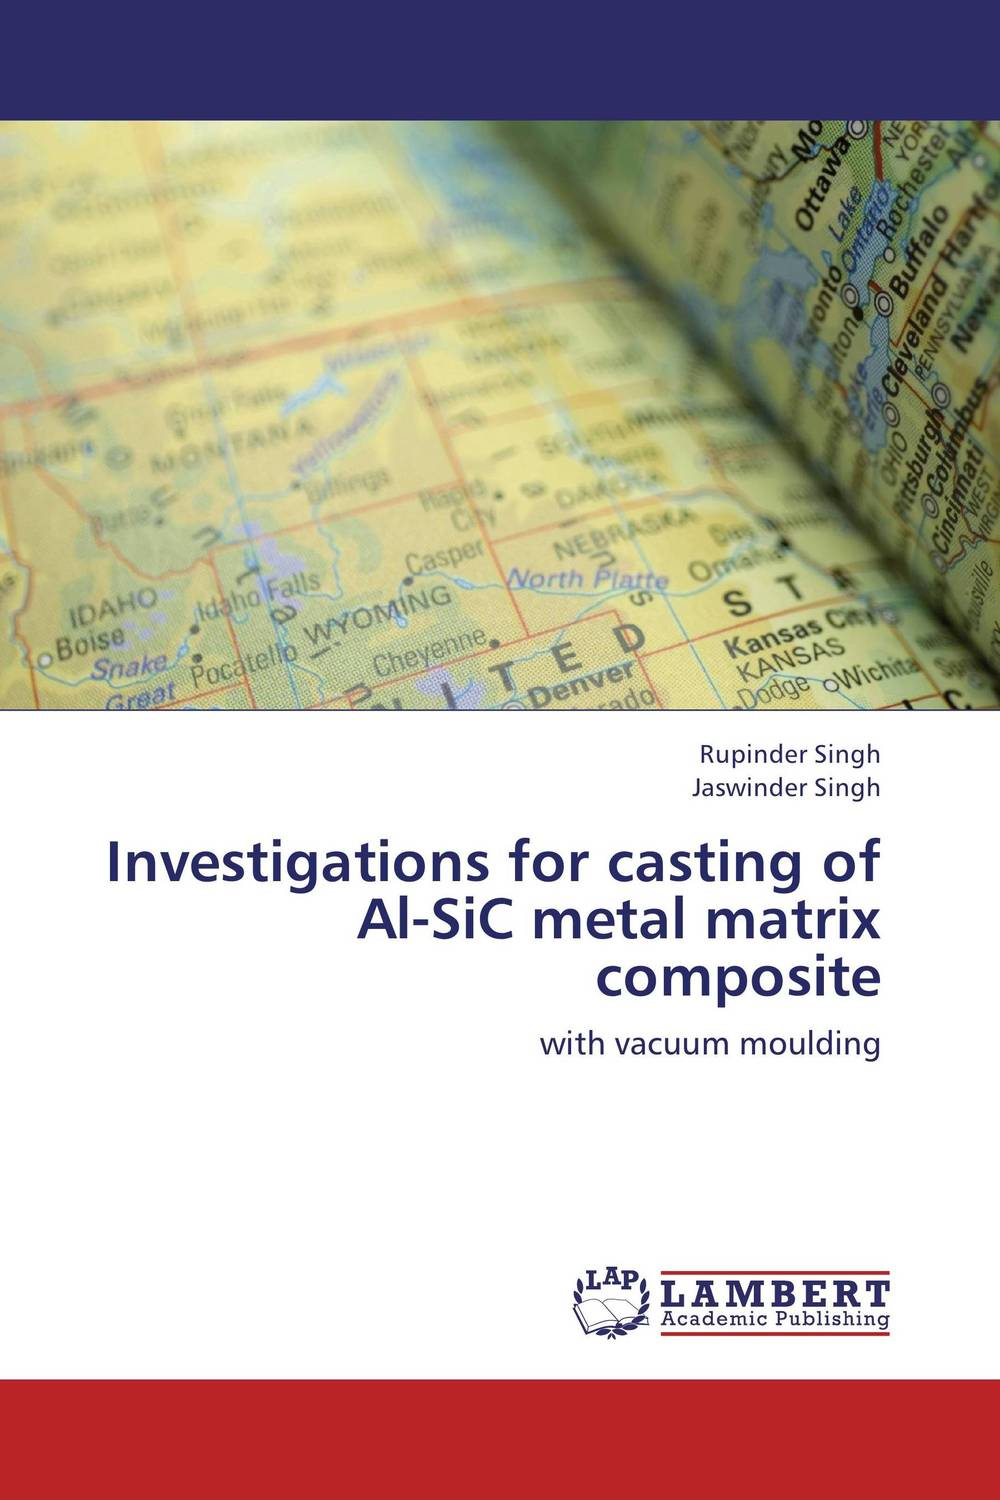 Investigations for casting of Al-SiC metal matrix composite